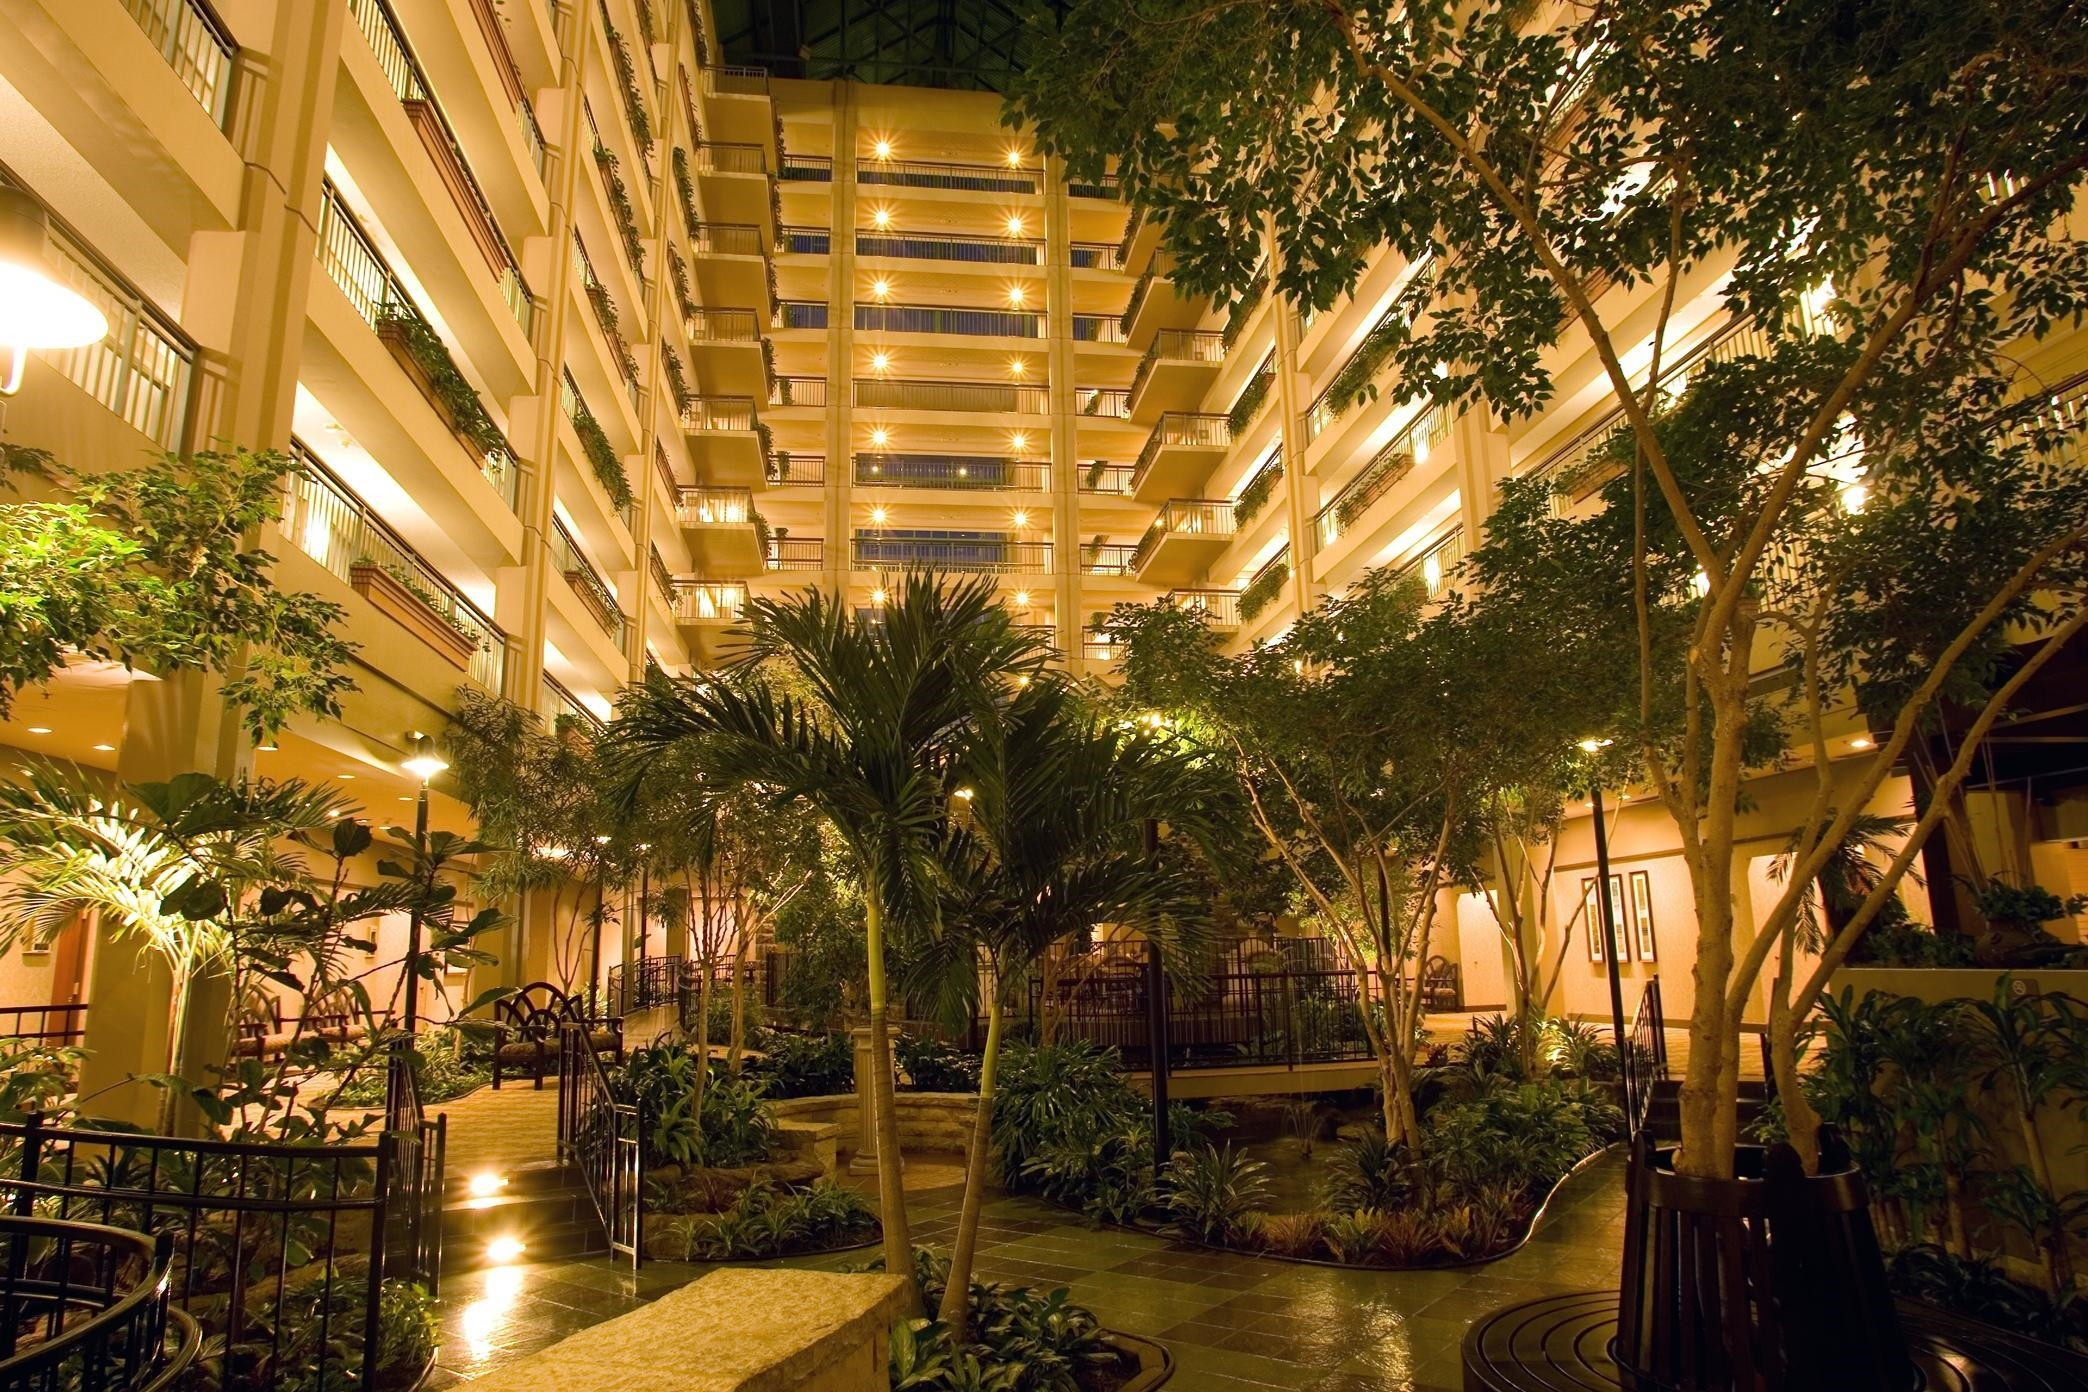 Embassy Suites by Hilton Chicago Lombard Oak Brook image 5